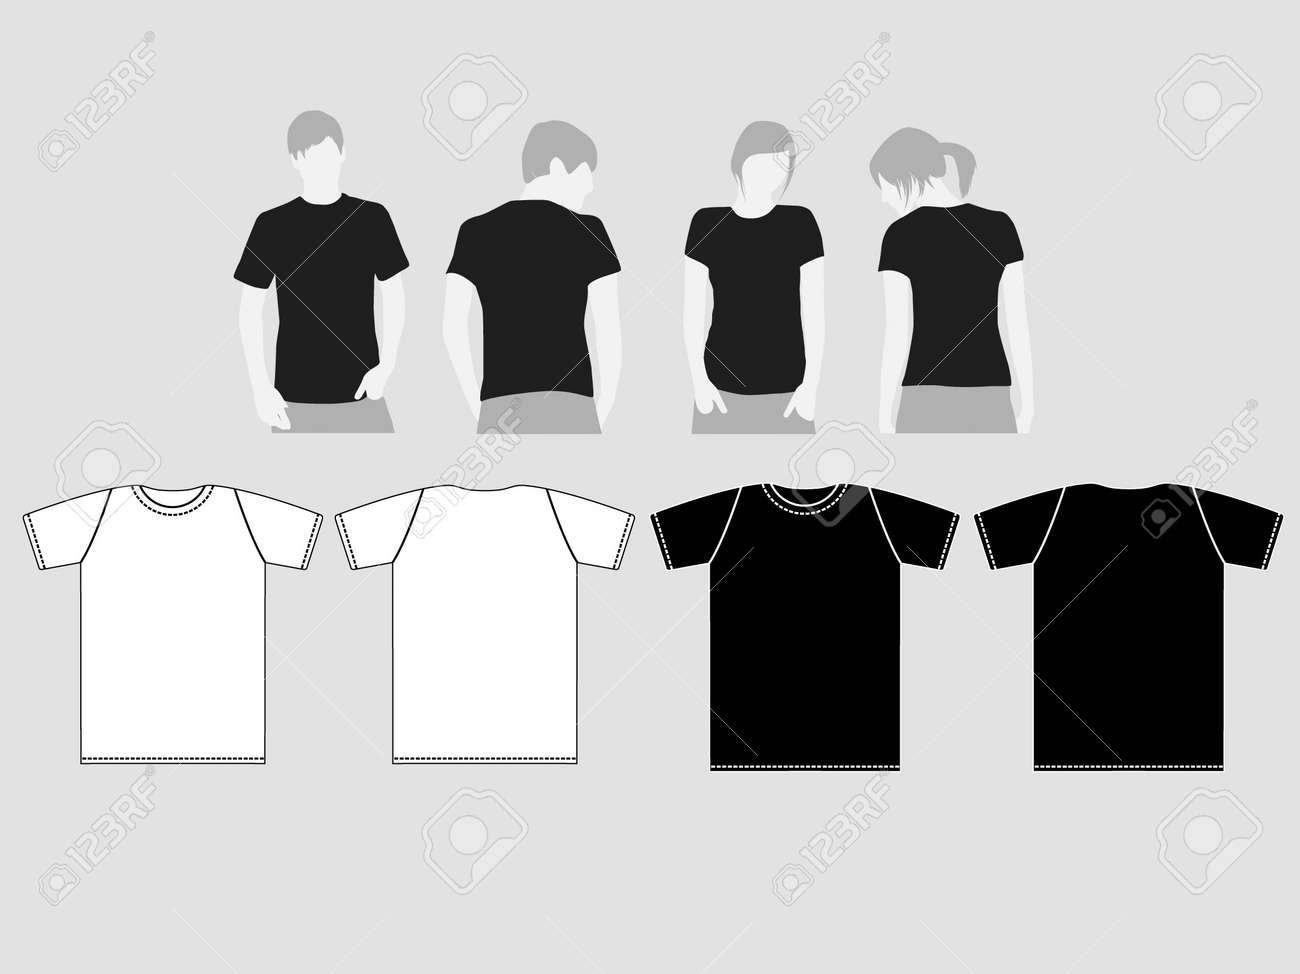 Black t shirt vector - Black T Shirt Vector Vector Black And White Patterns Of T Shirts For Men And